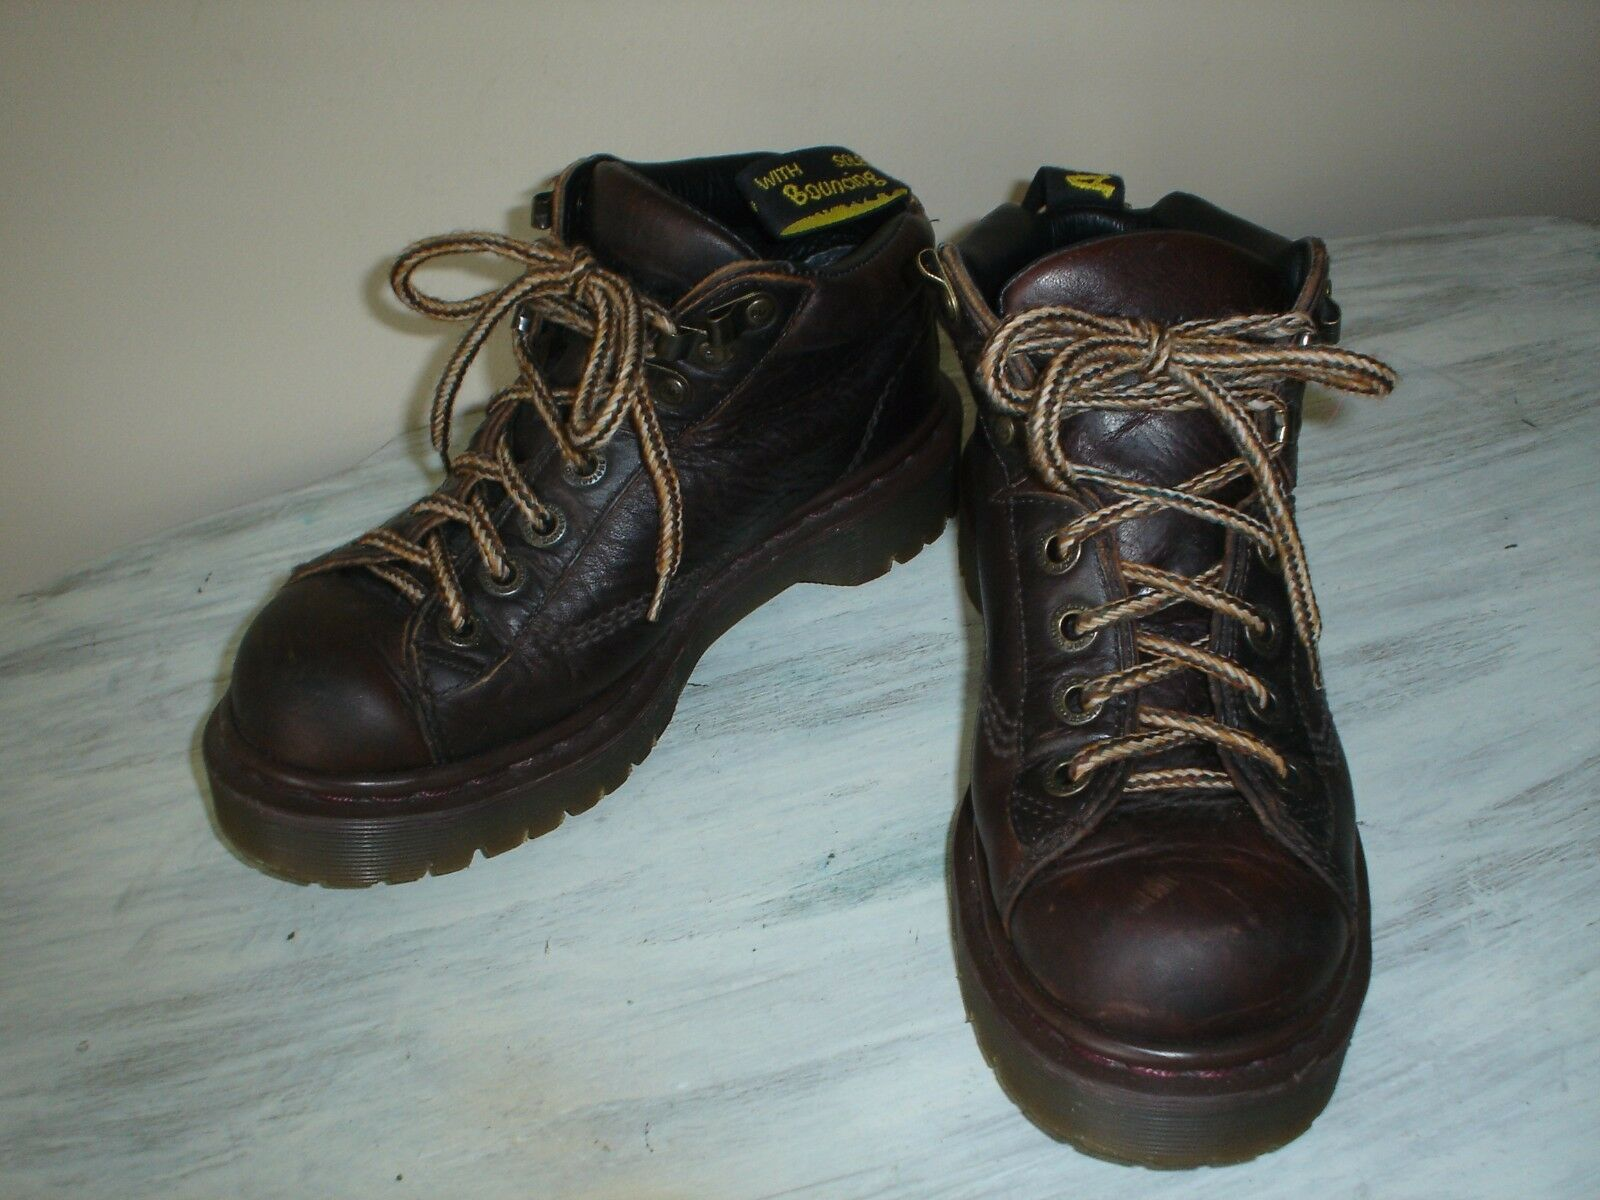 Dr. Martens Air Wair Youth BROWN LEATHER SAXON 8287 BOOTS AW004 AW004 BOOTS SIZE Youth 5 EUC 54ffdb